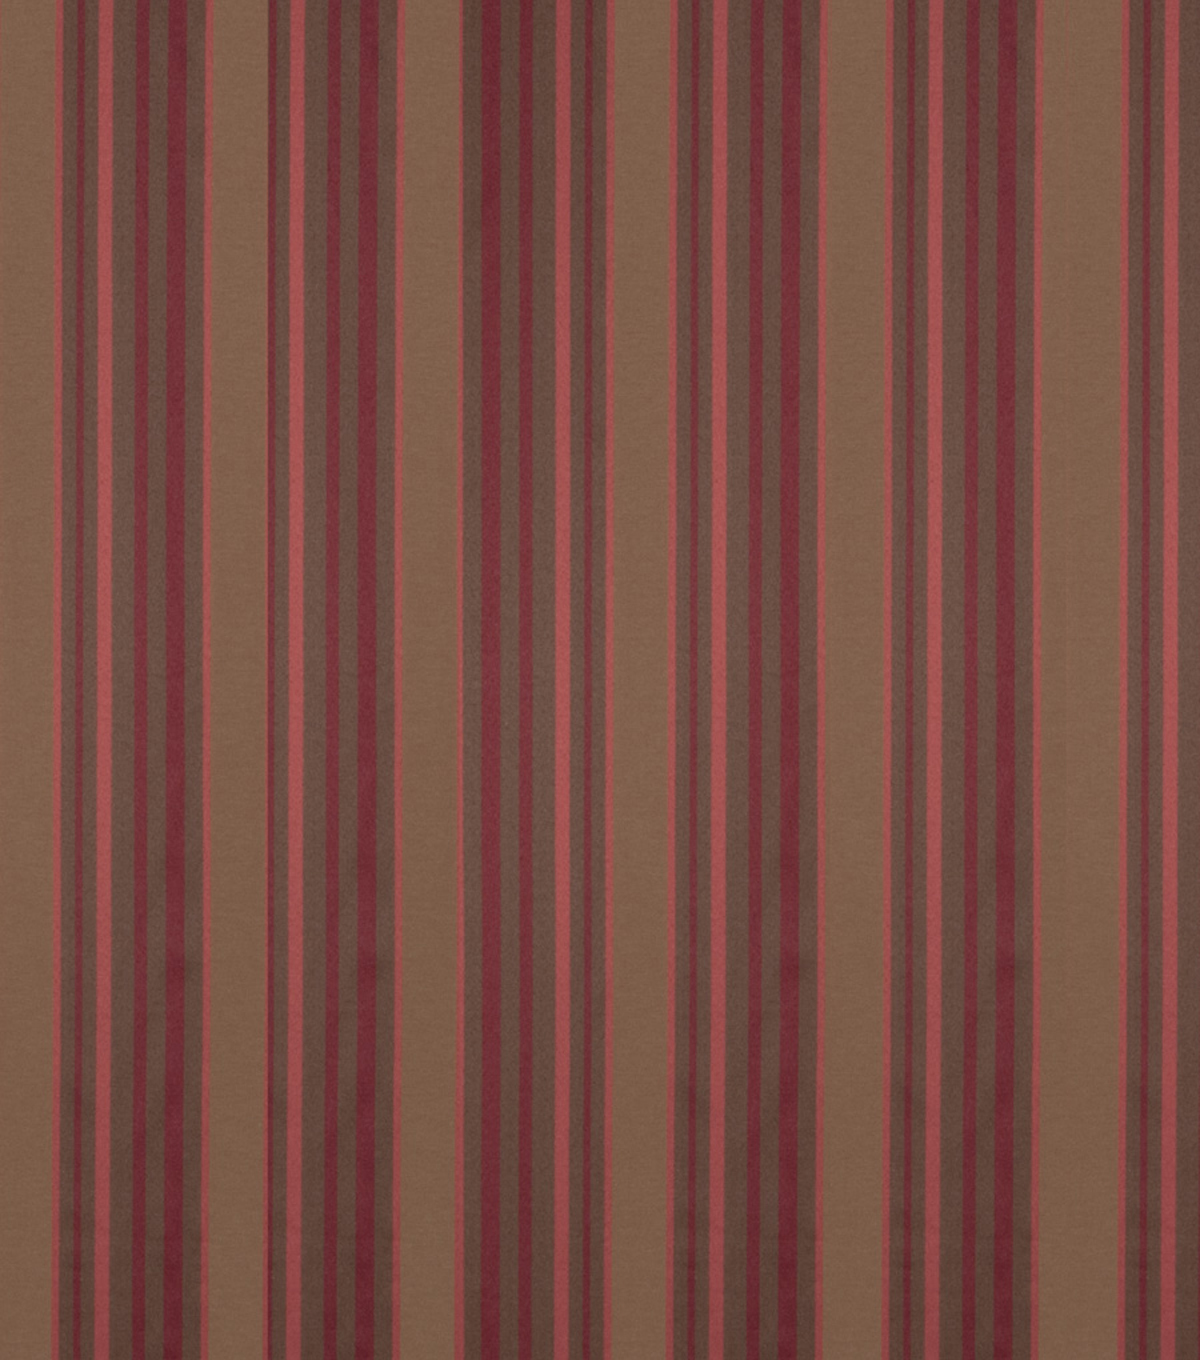 Home Decor 8\u0022x8\u0022 Fabric Swatch-Jaclyn Smith Interval Golden Berry